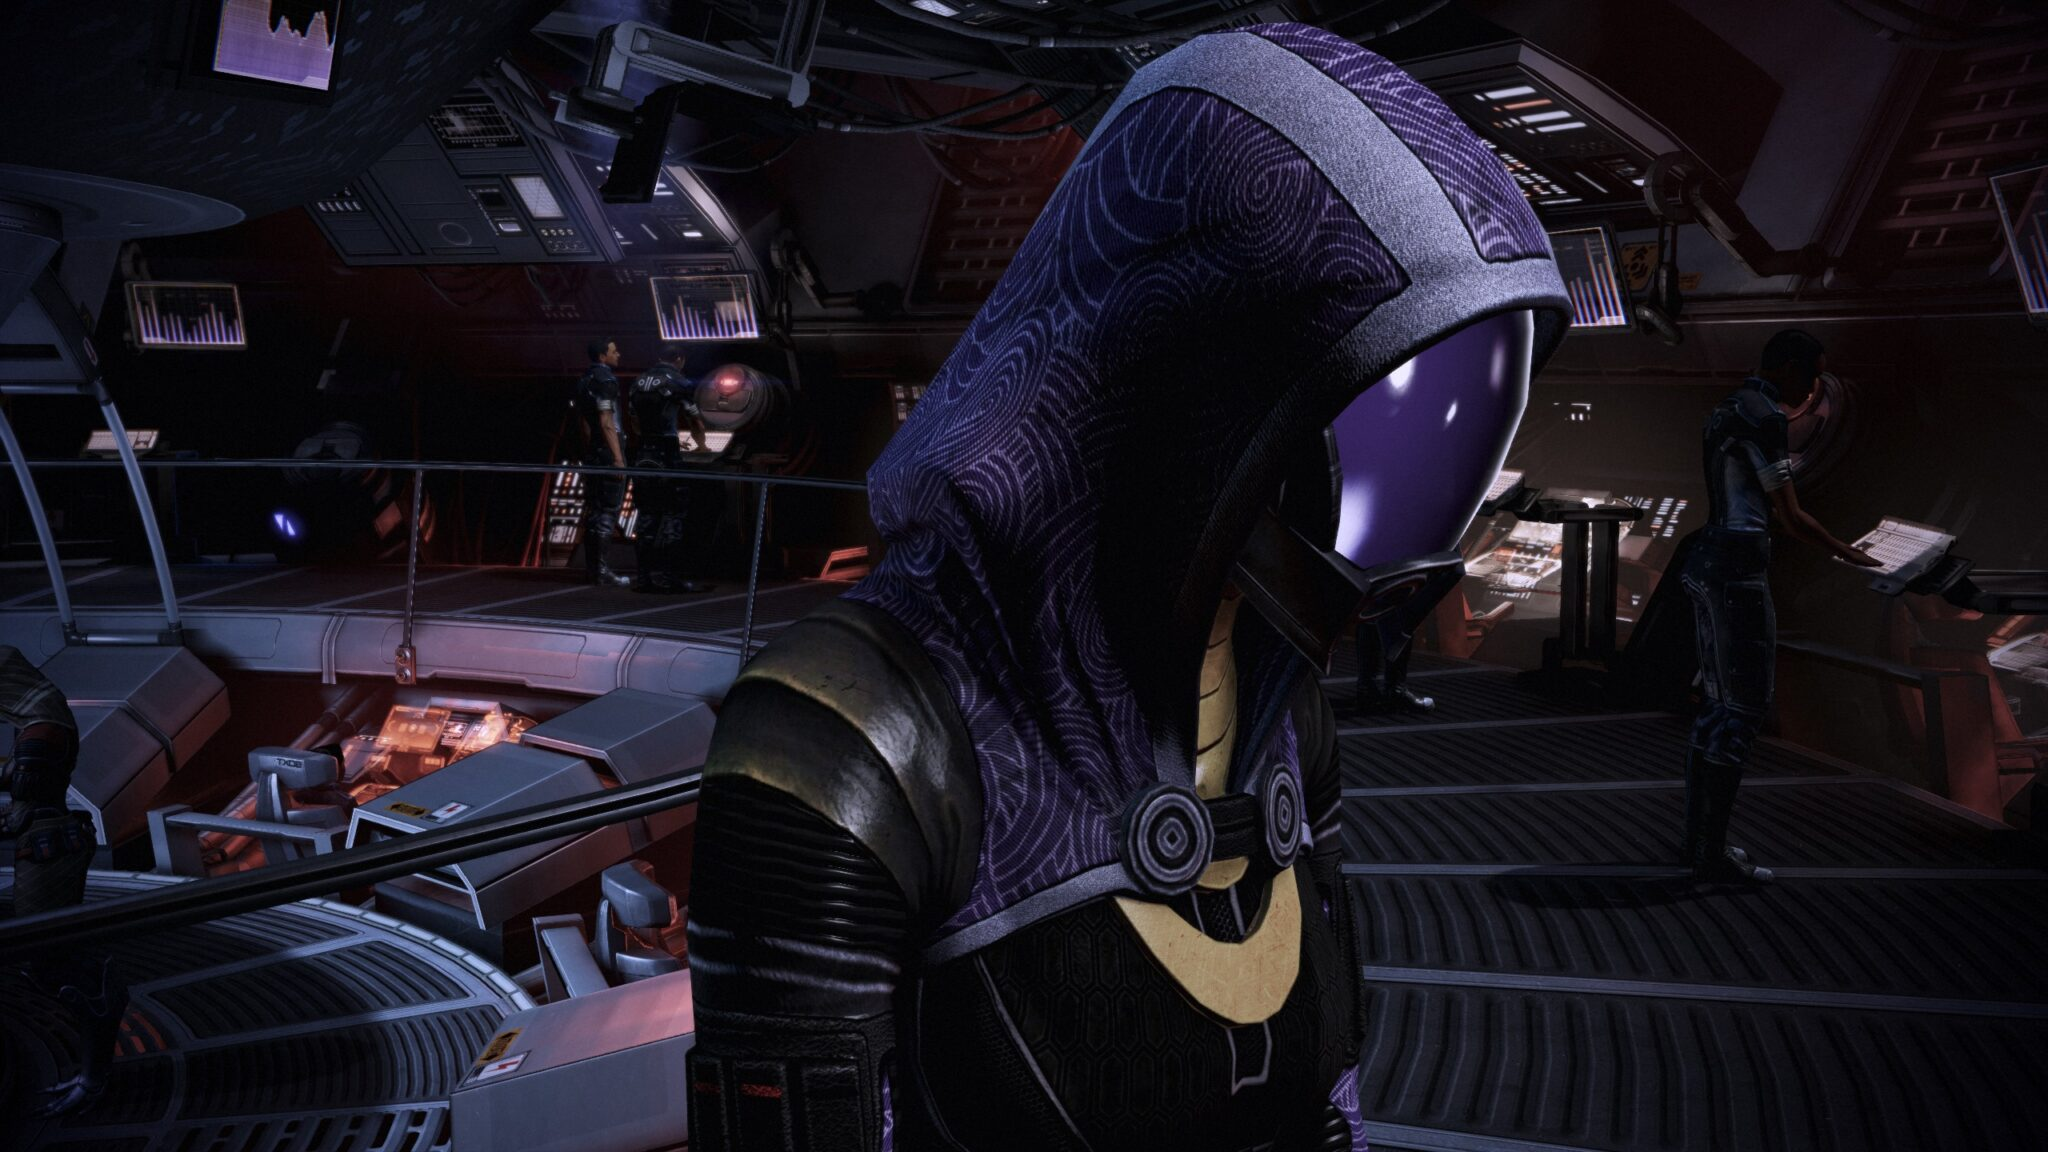 Mass Effect Legendary Edition A Lot of Textures Mod Introduces High Quality Textures, Improved Static Lighting and More